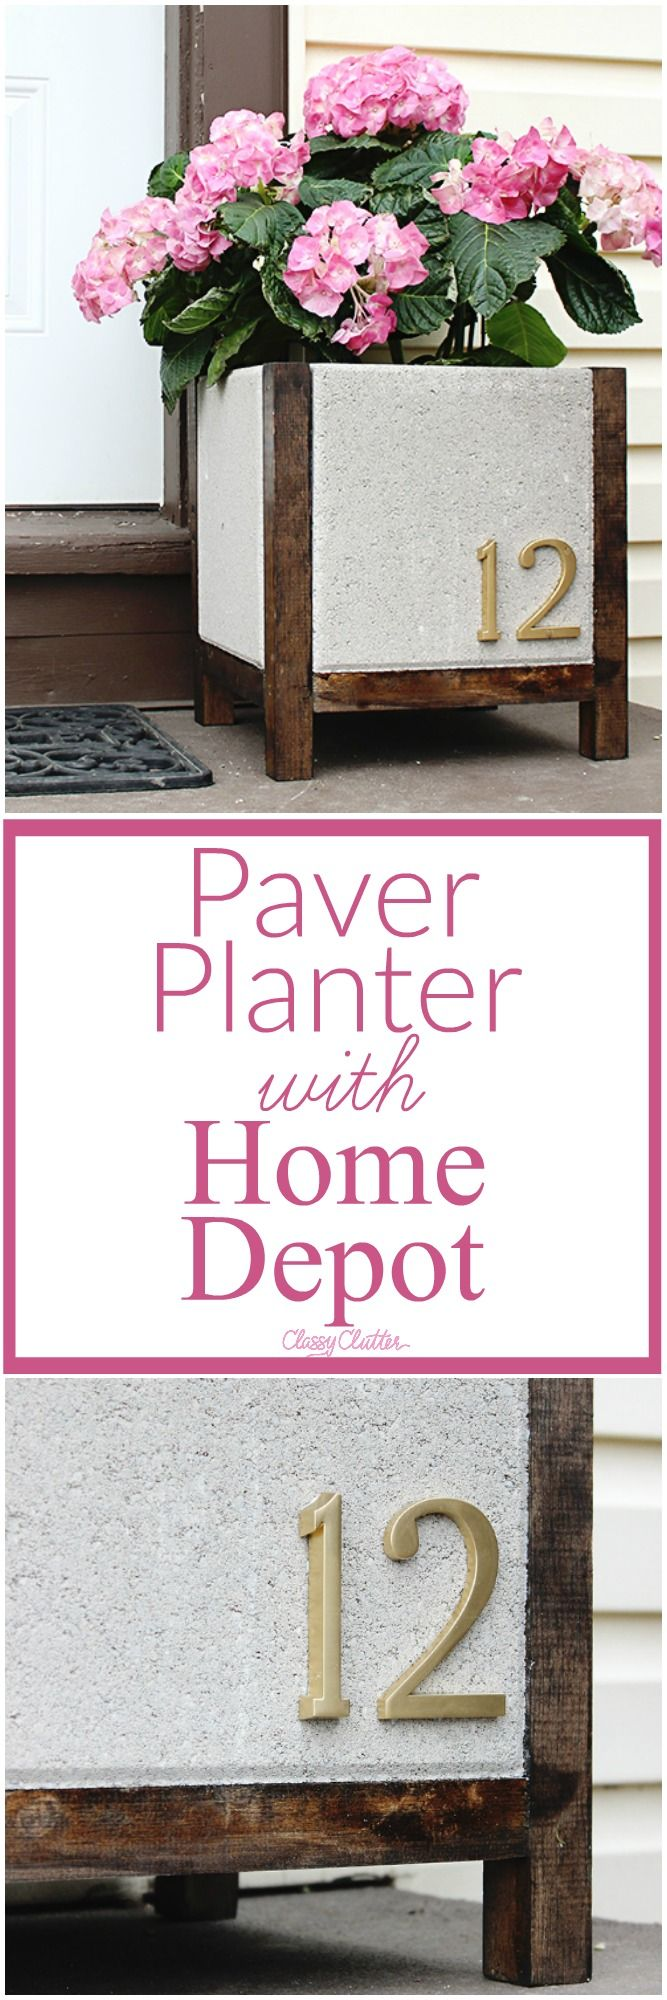 Pave Planter that is adorable and so cute! Make yours own DIY pave planter.